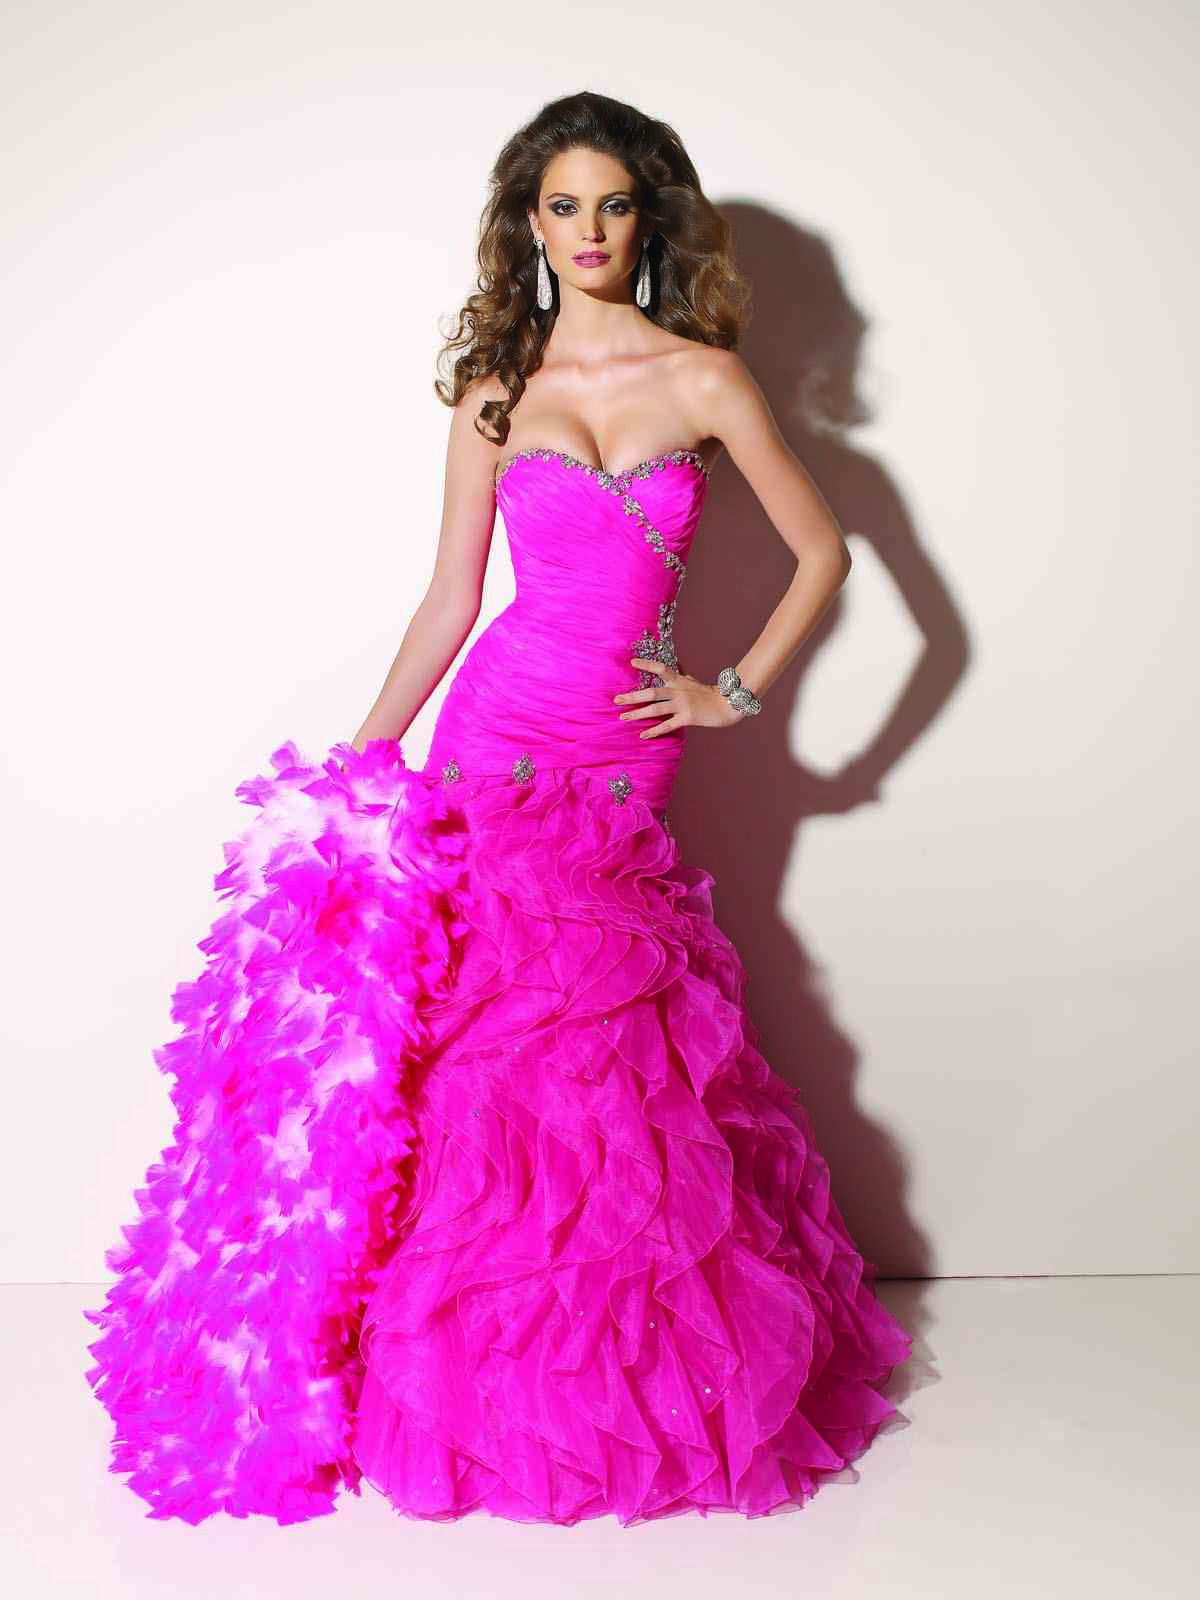 91020spc prom dress id 91020spc shop for 2013 mori lee prom dresses ...